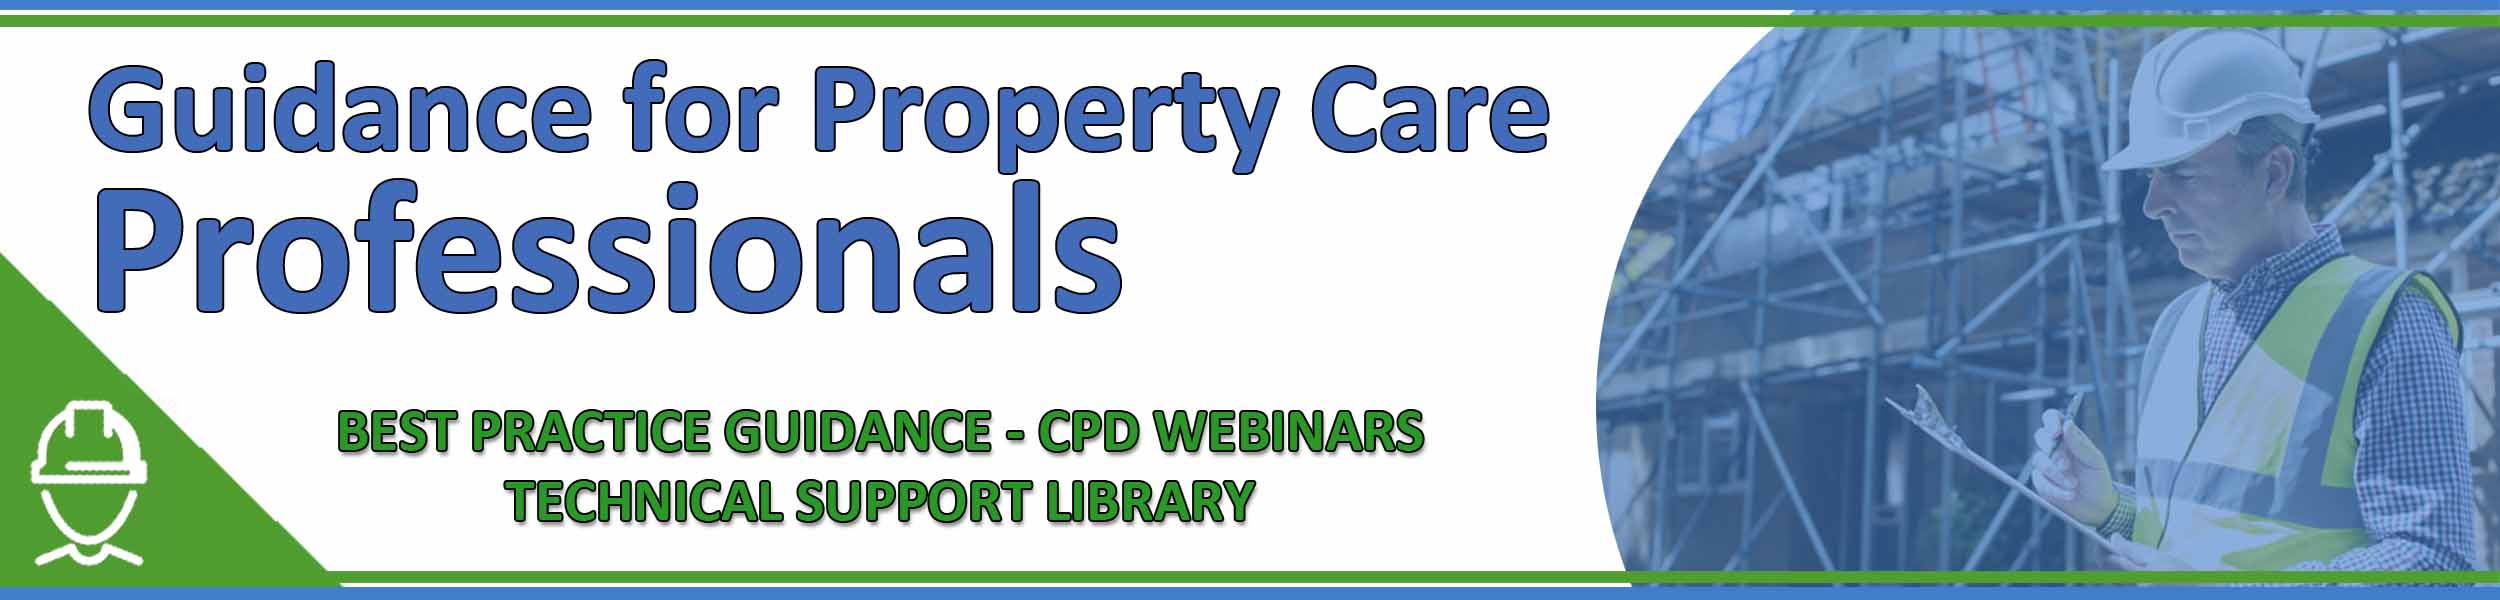 Guidance for Professionals_Property Care - Property Care Association